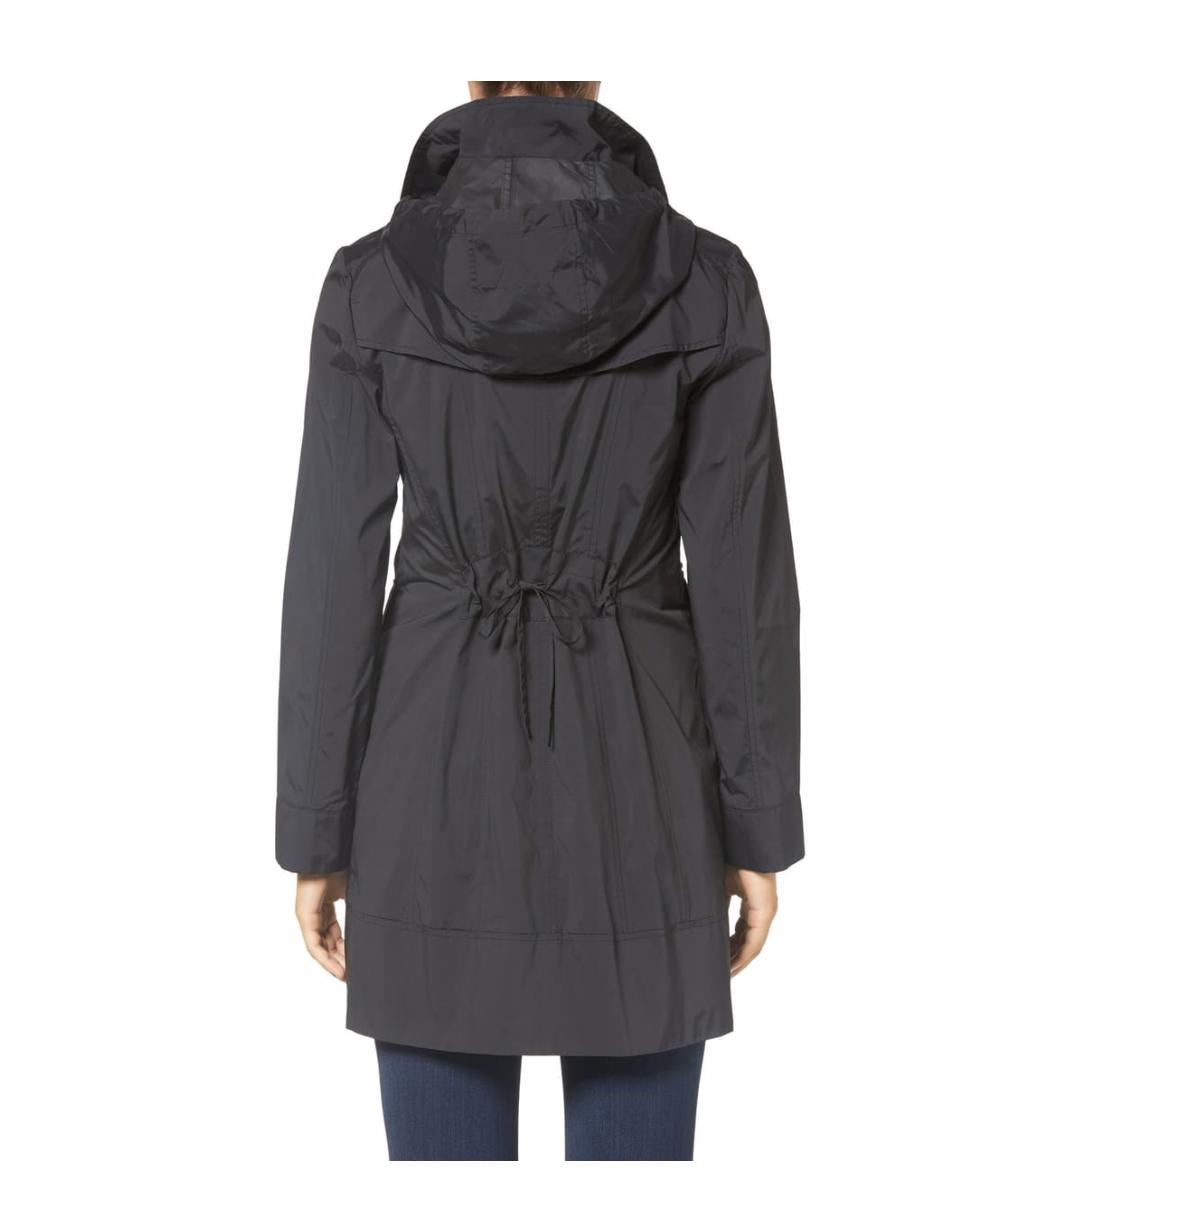 Petite Black Bow Packable Hooded